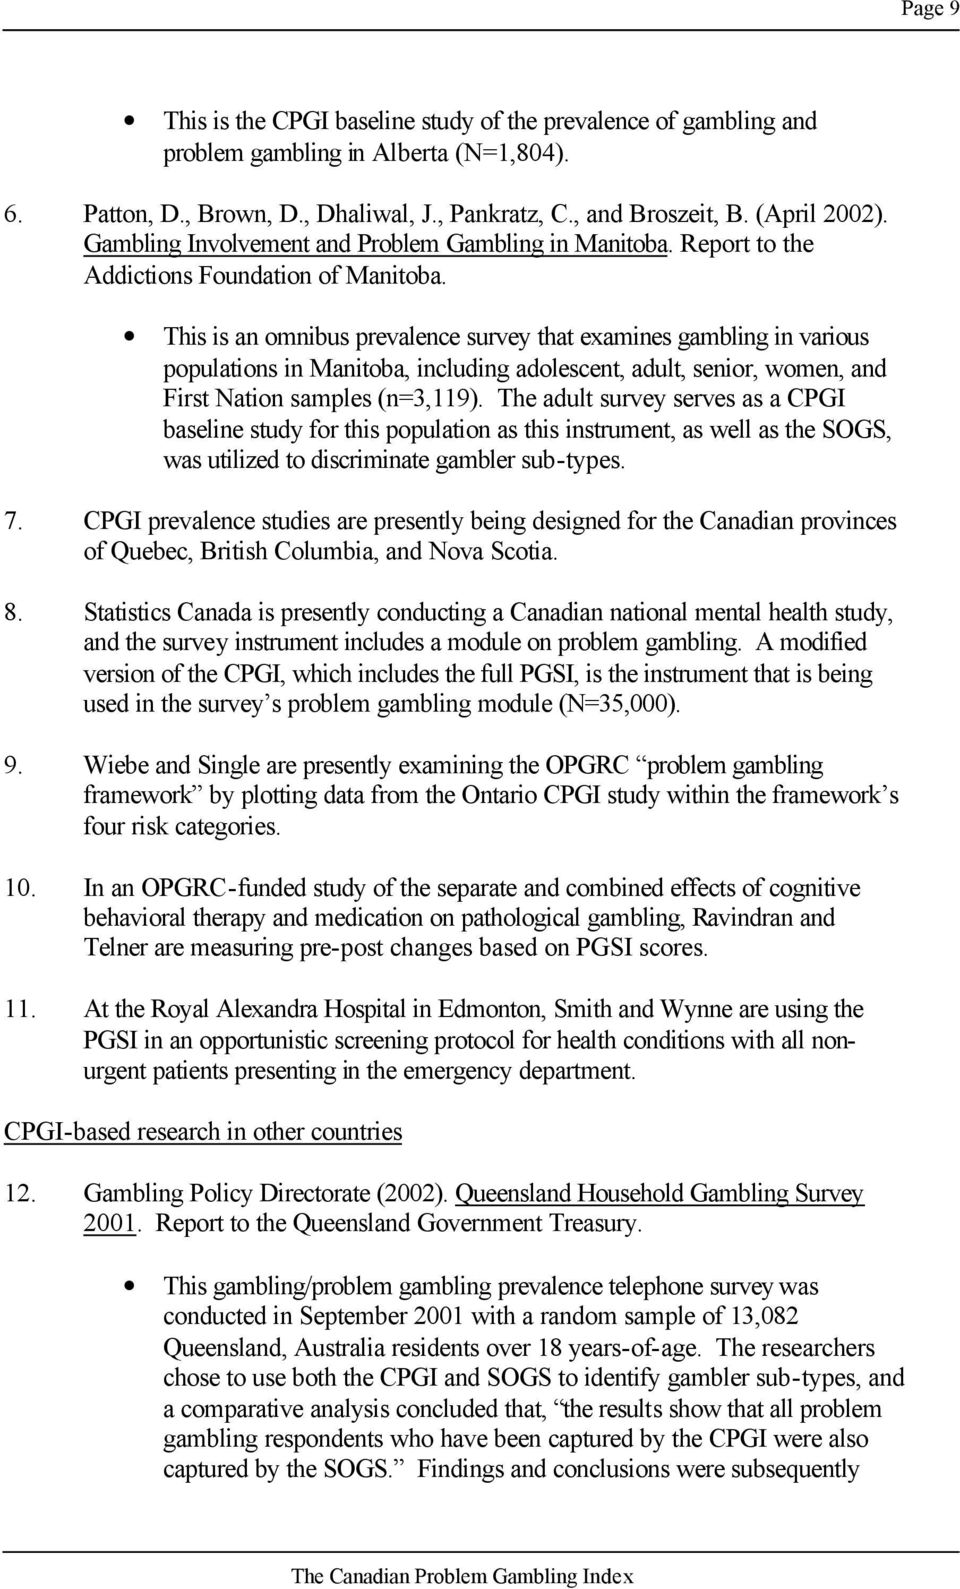 This is an omnibus prevalence survey that examines gambling in various populations in Manitoba, including adolescent, adult, senior, women, and First Nation samples (n=3,119).